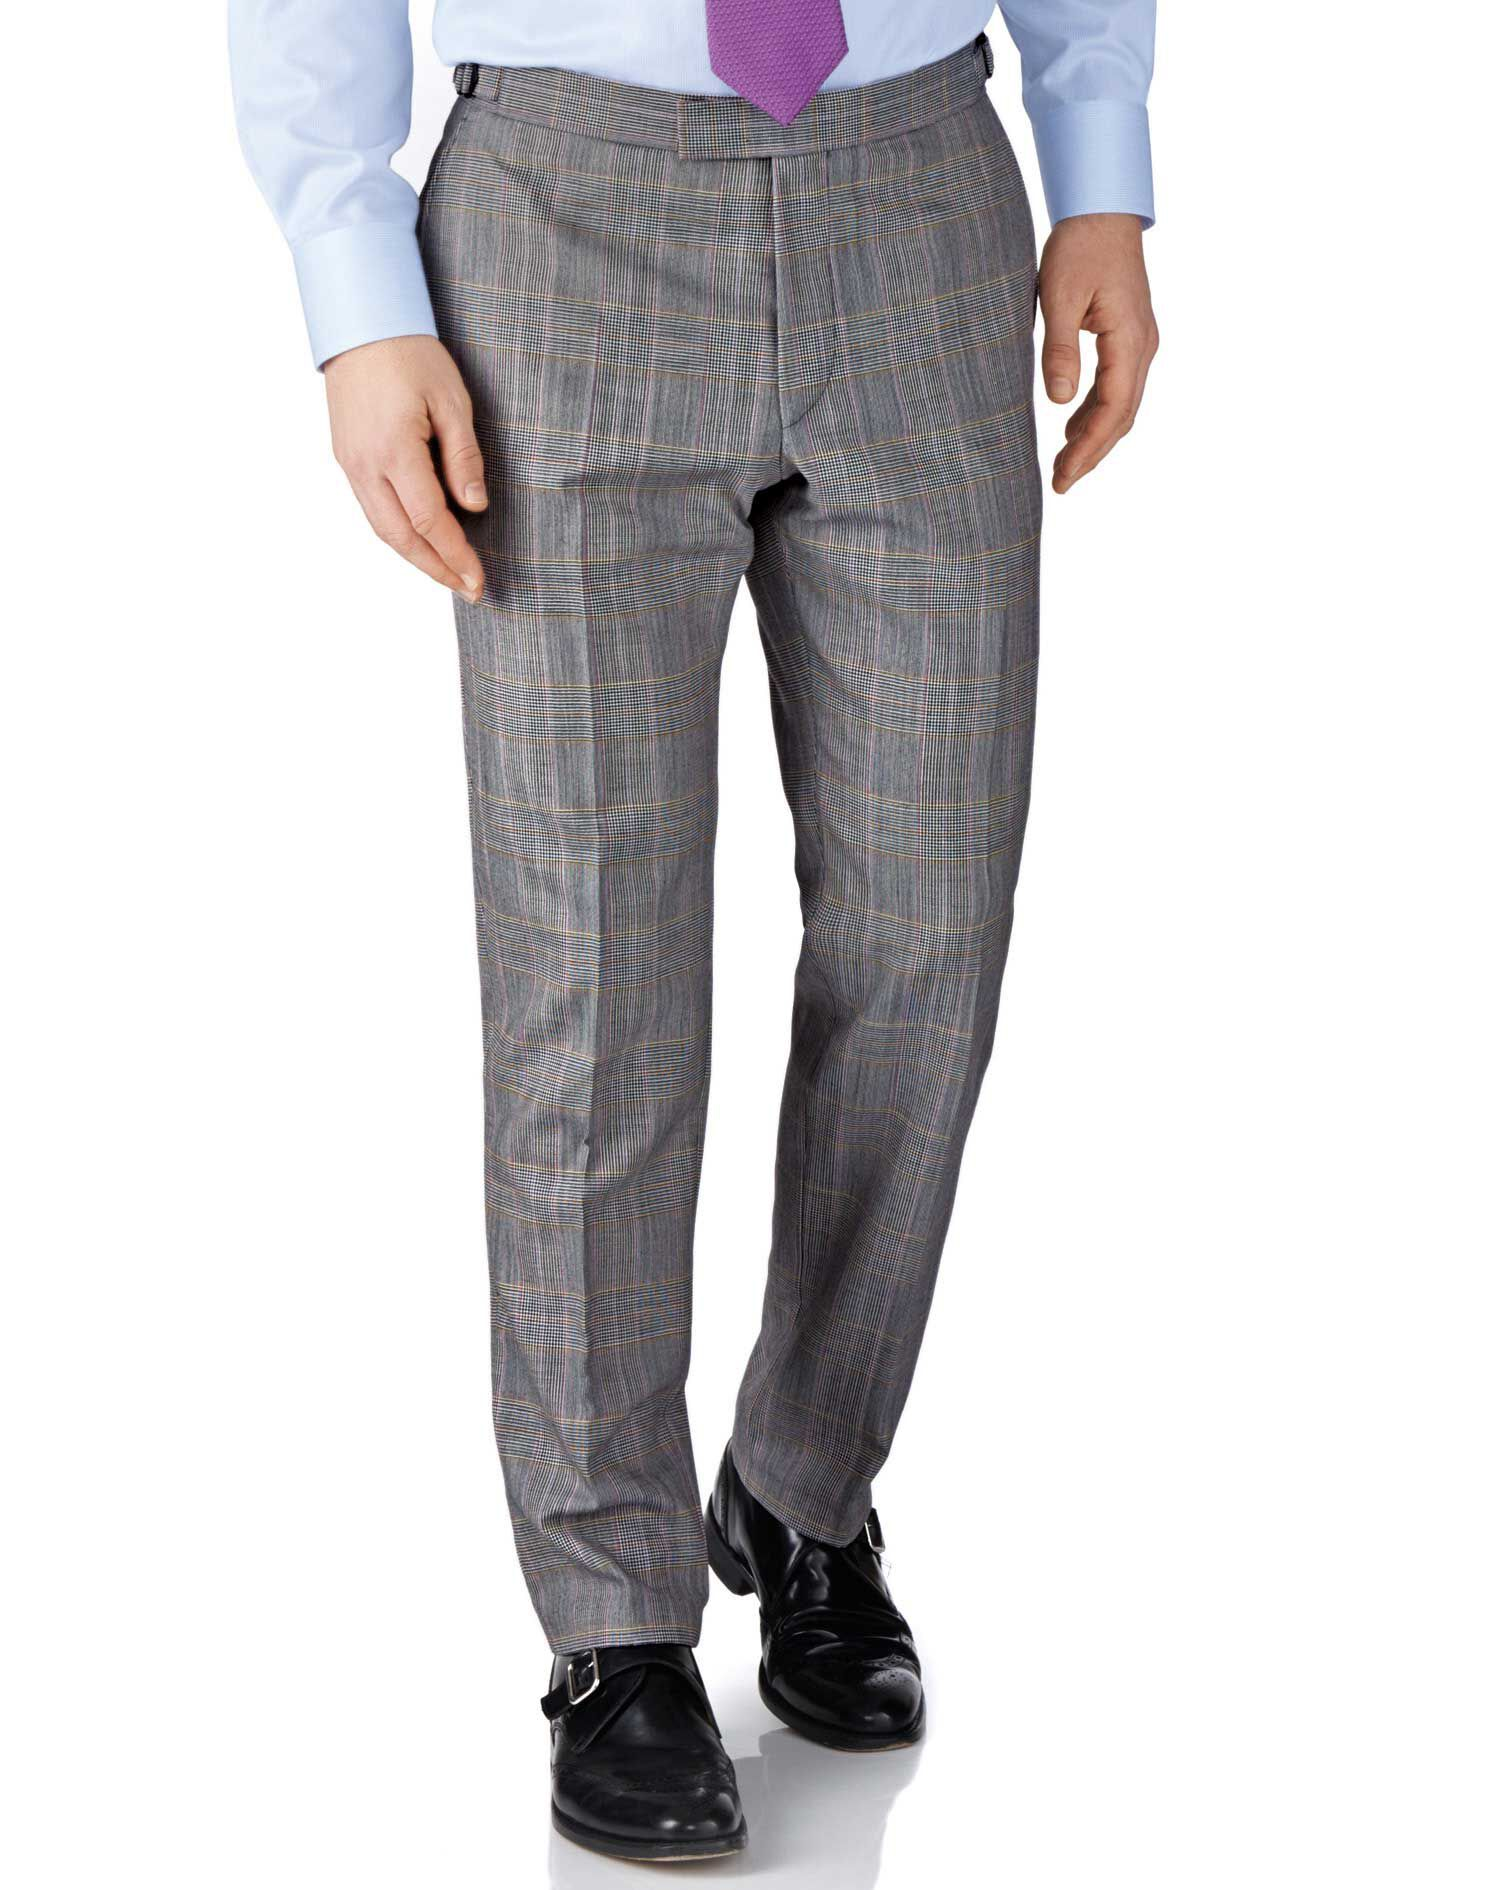 Grey Check Slim Fit British Panama Luxury Suit Trousers Size W30 L38 by Charles Tyrwhitt